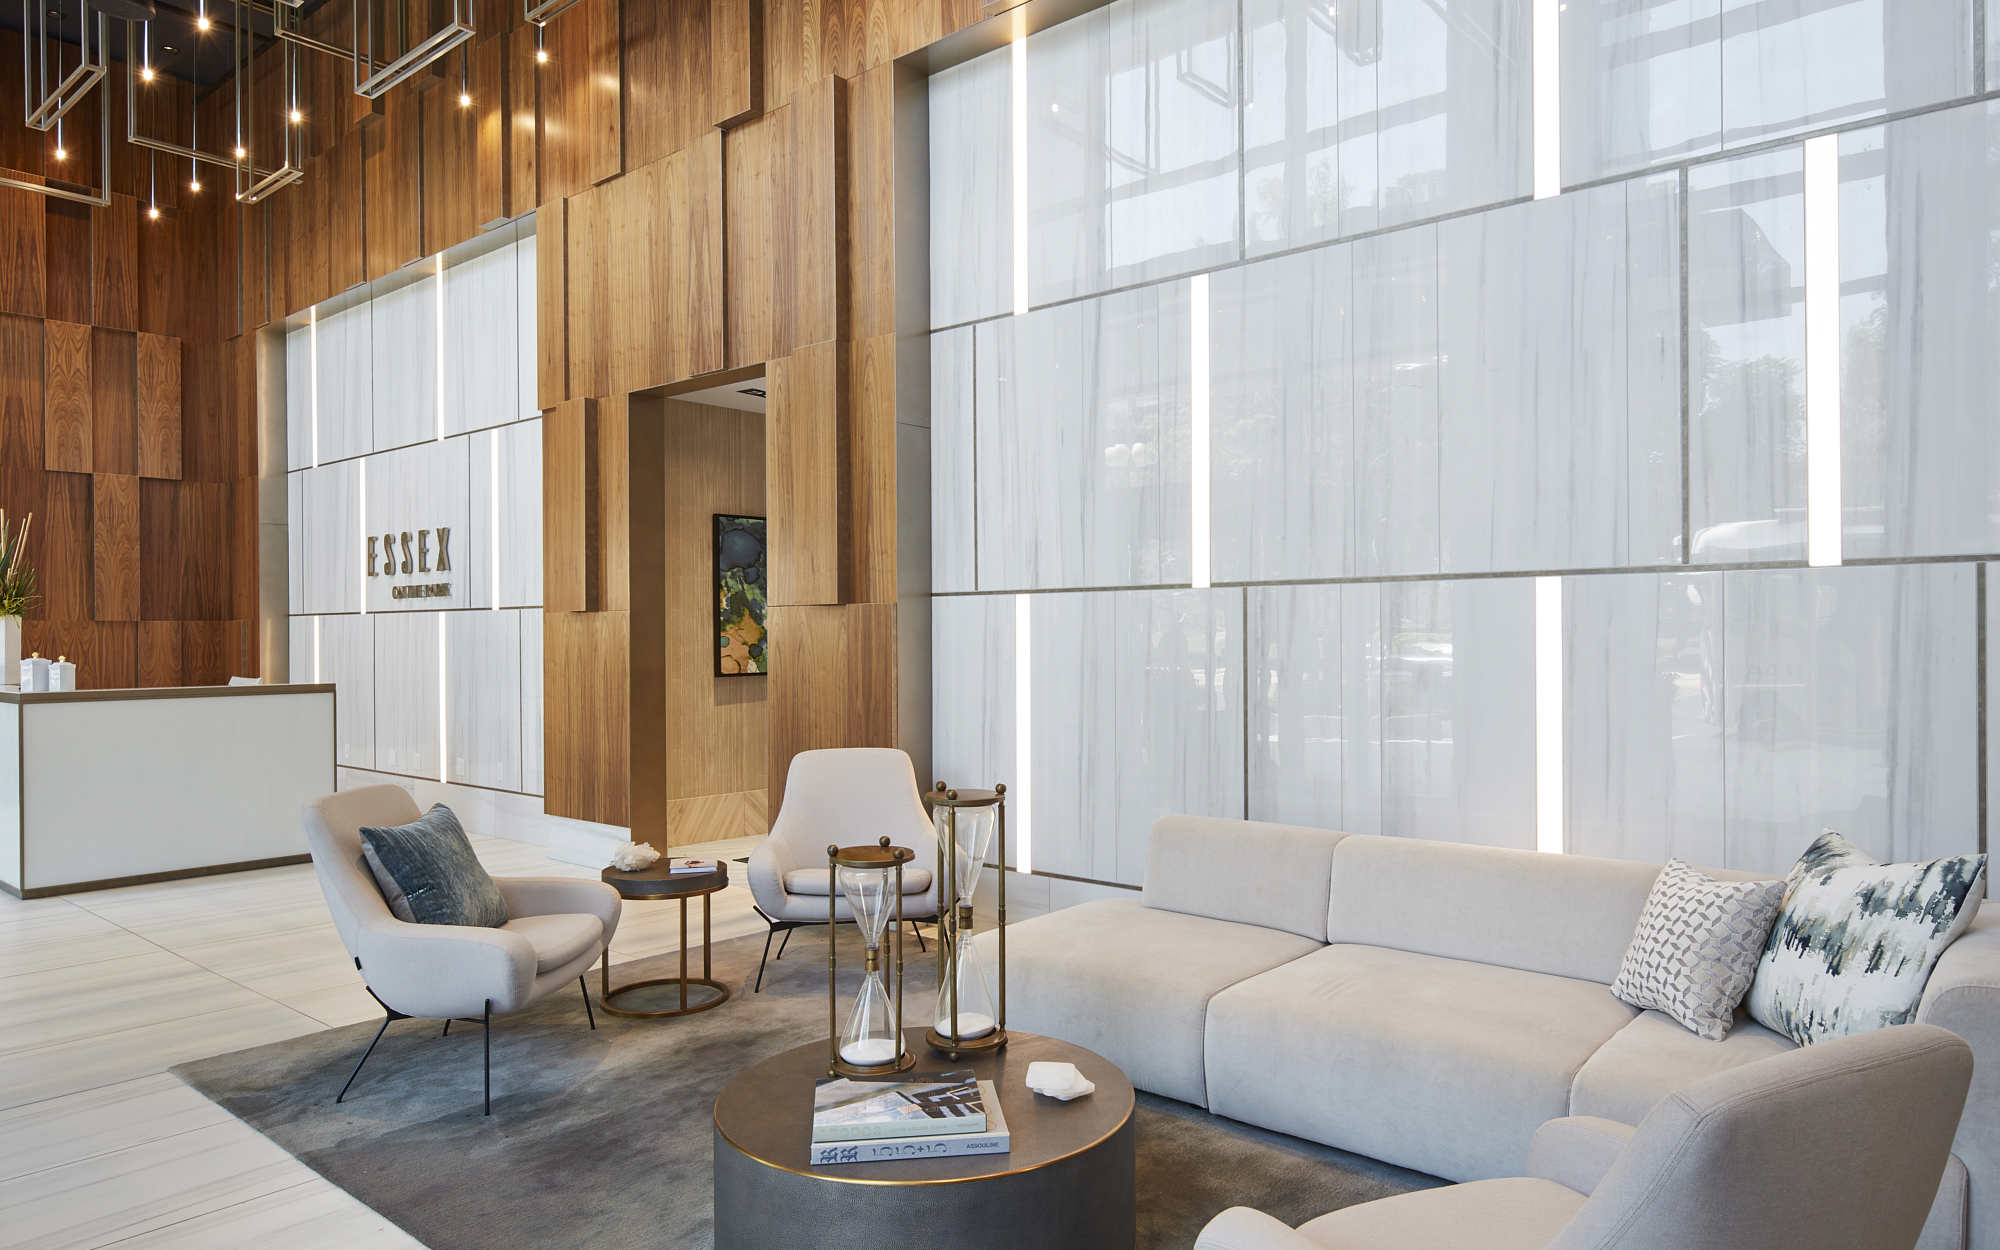 Essex lobby and waiting area